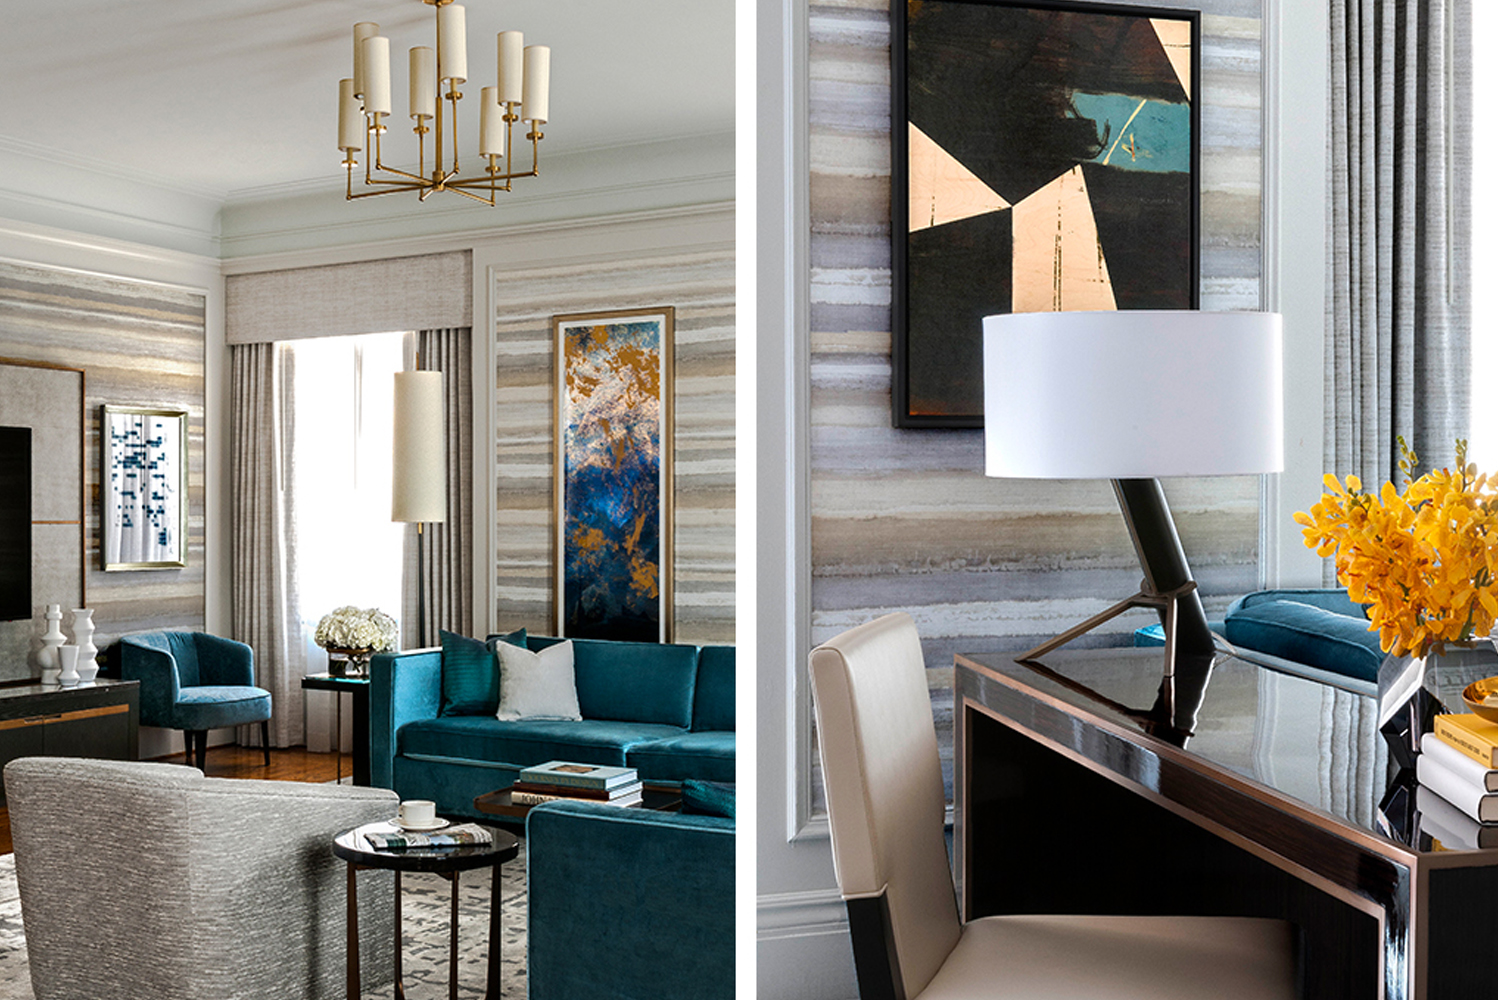 The guestroom interior design pairs classically styled furniture and window treatments with a color palette of French grey and Parisian blue.